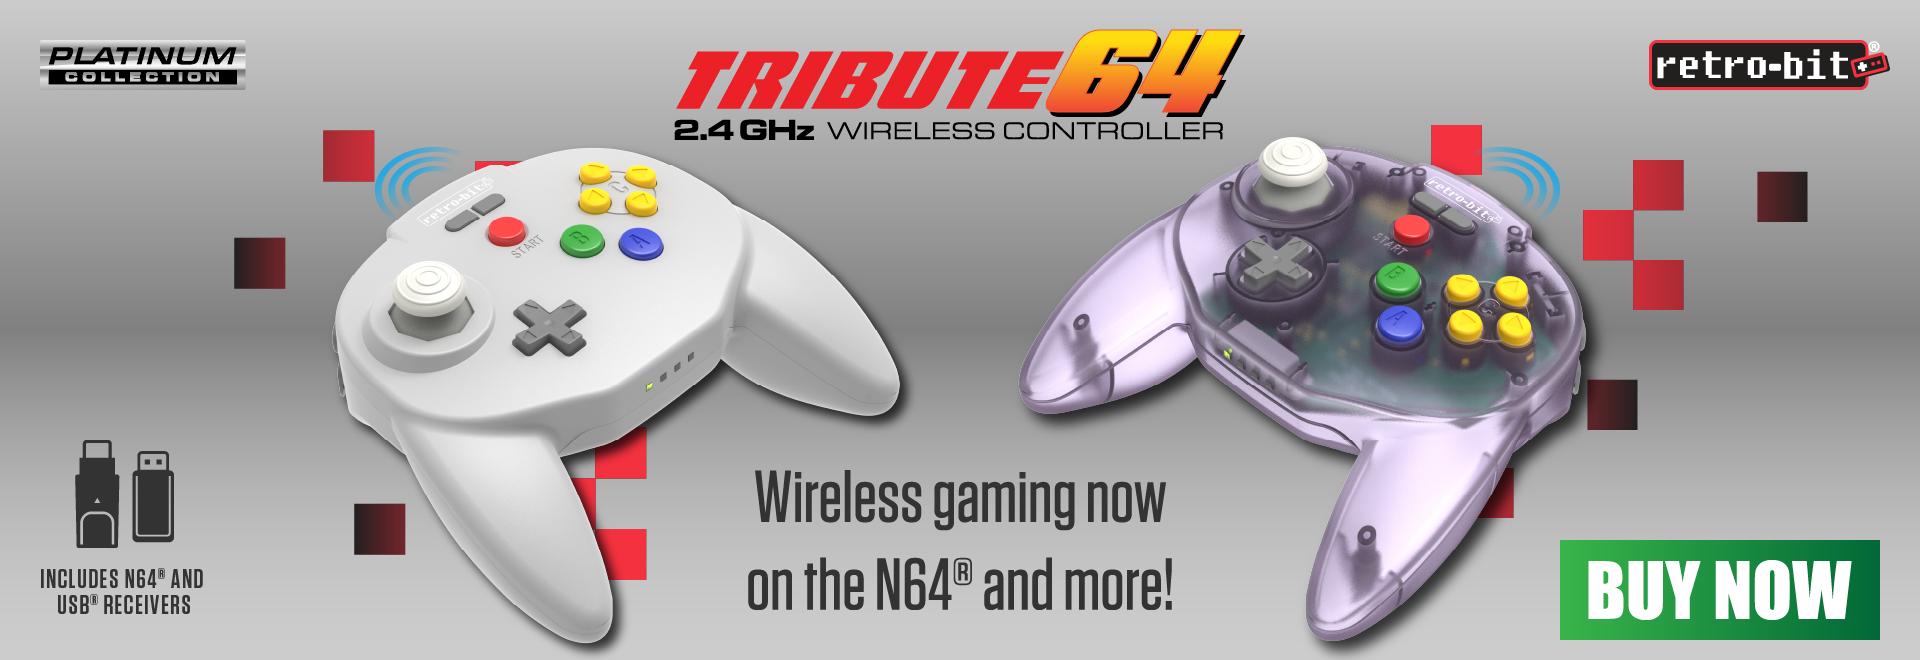 Tribute64 2.4 GHz Wireless Controllers are now available!